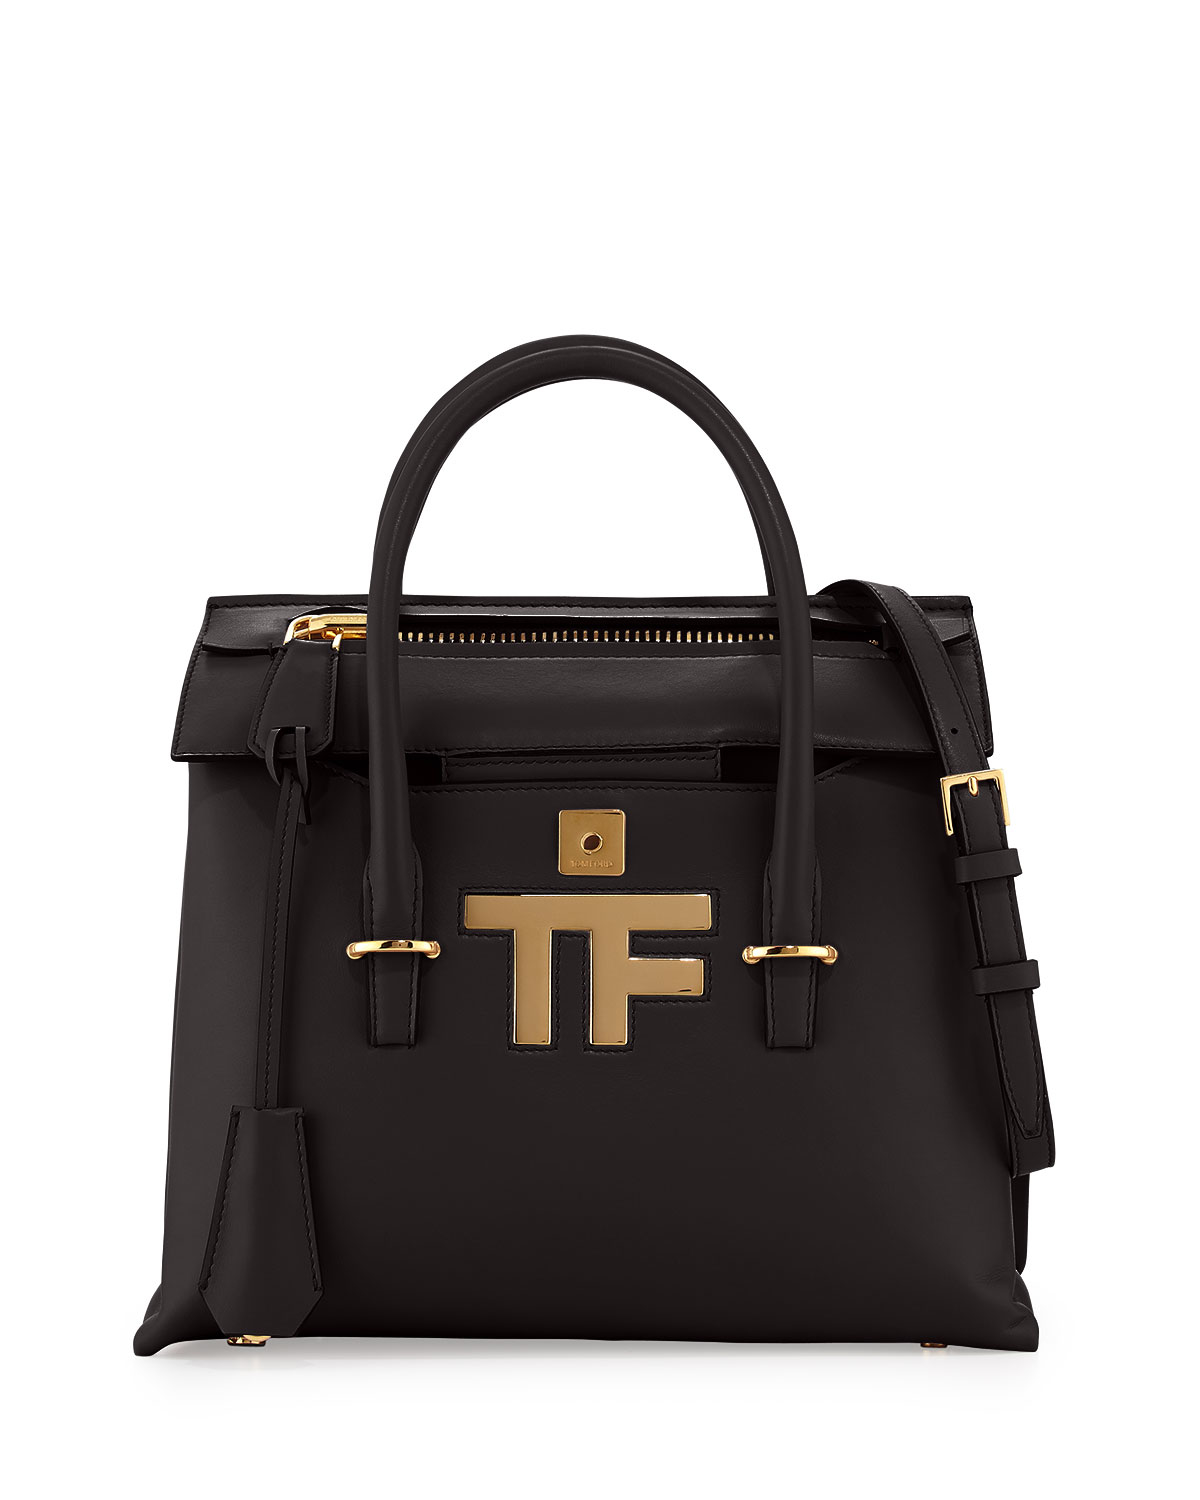 Awesome Tom Ford Womens Amber Doublezip Leather Tote Bag In Brown ROSE